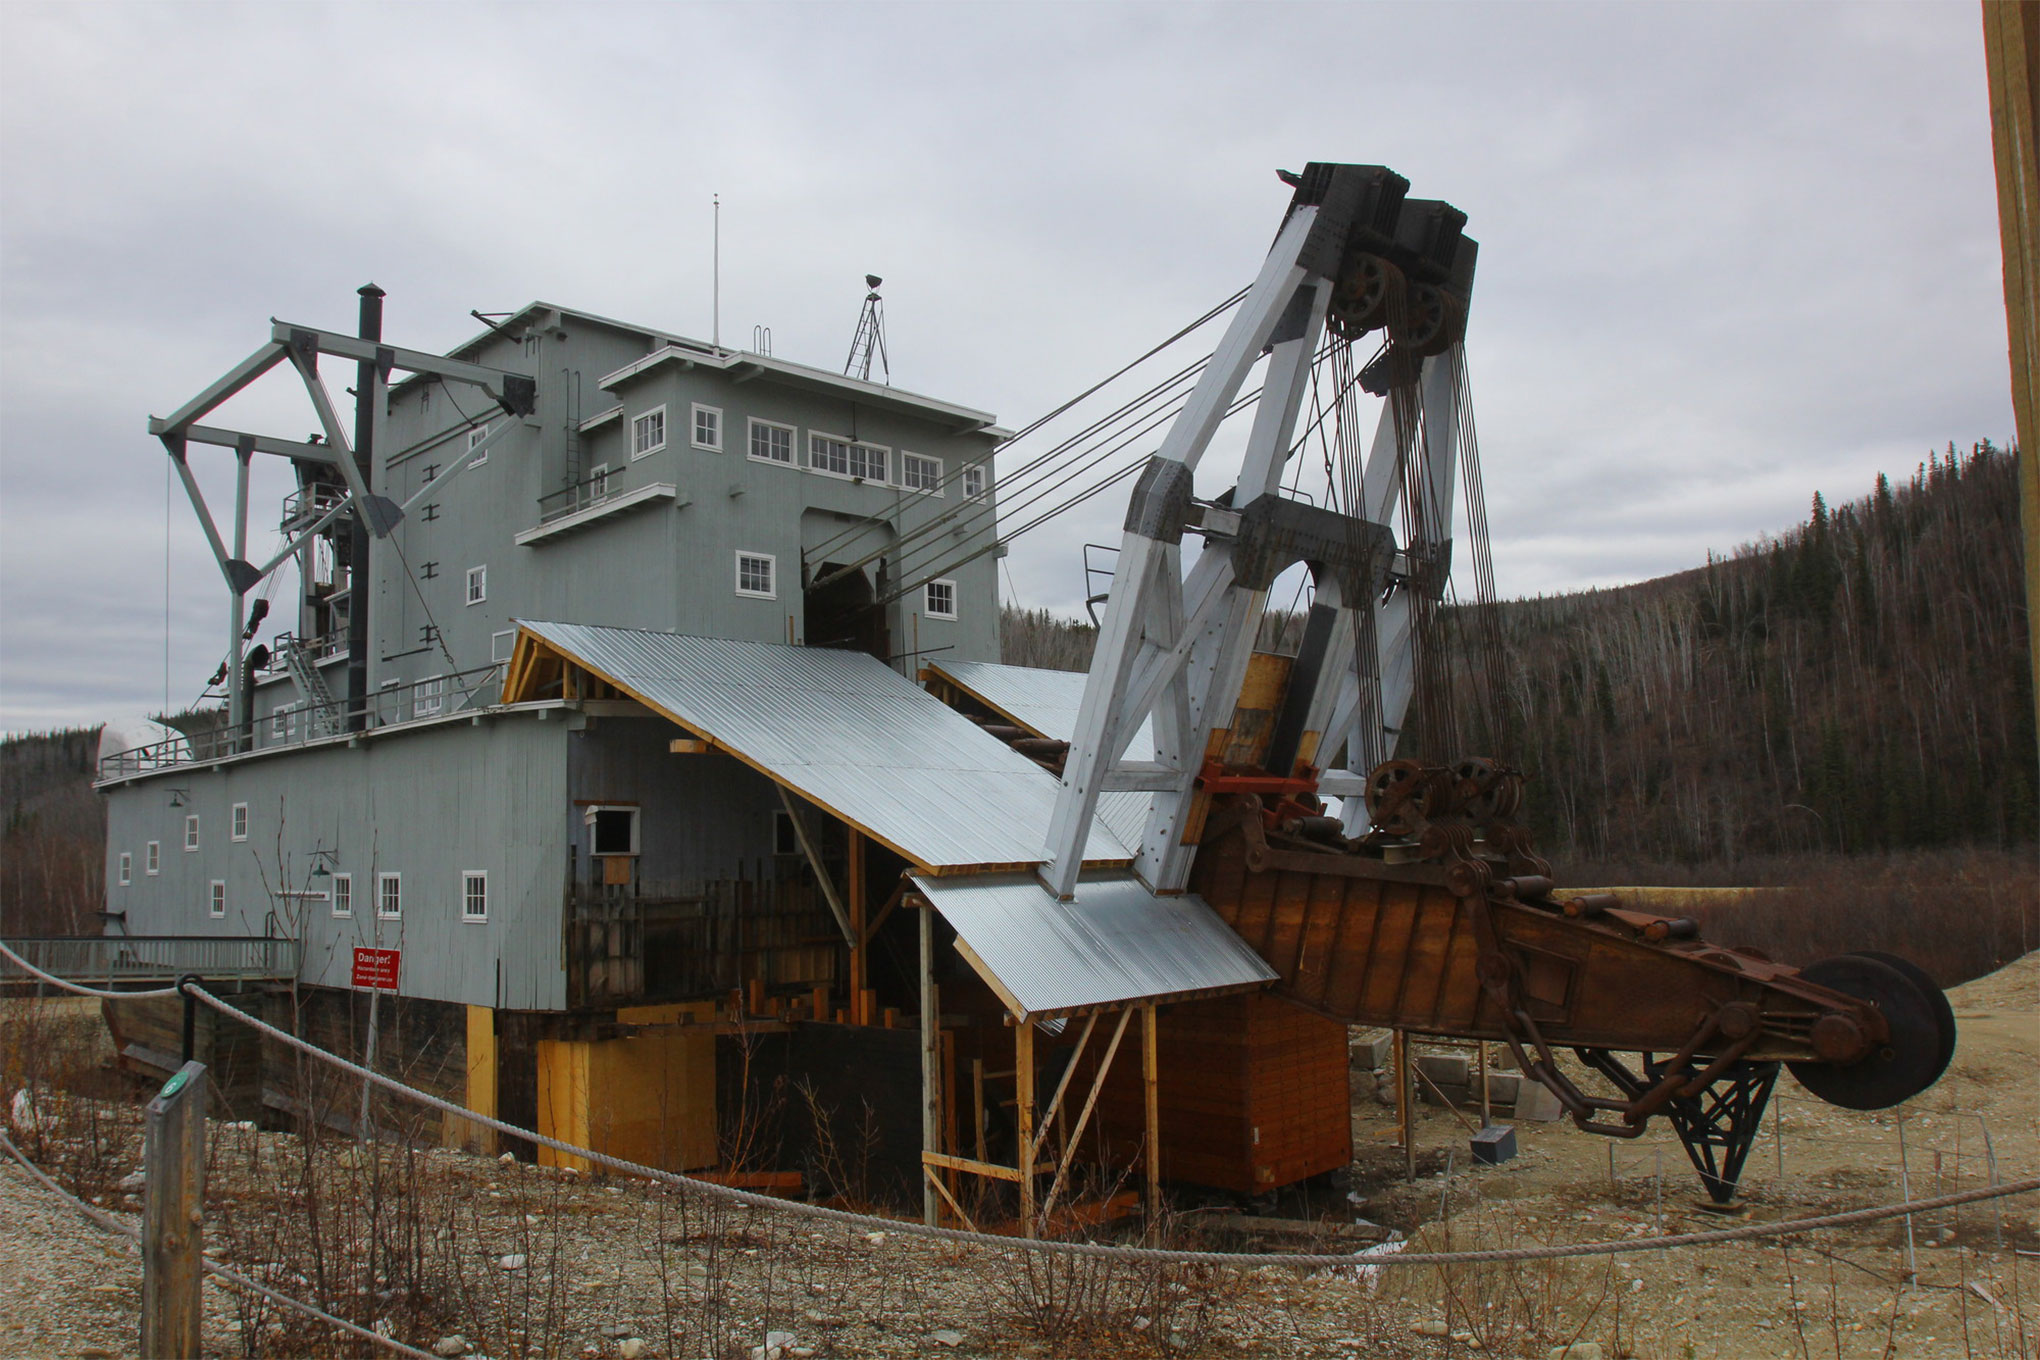 We headed out of Dawson and found an old mining dredge. The dredge was as big as a building but could float its way up small streams by digging a hole to fill with water. It floats itself and then mines all the soil around itself for gold.